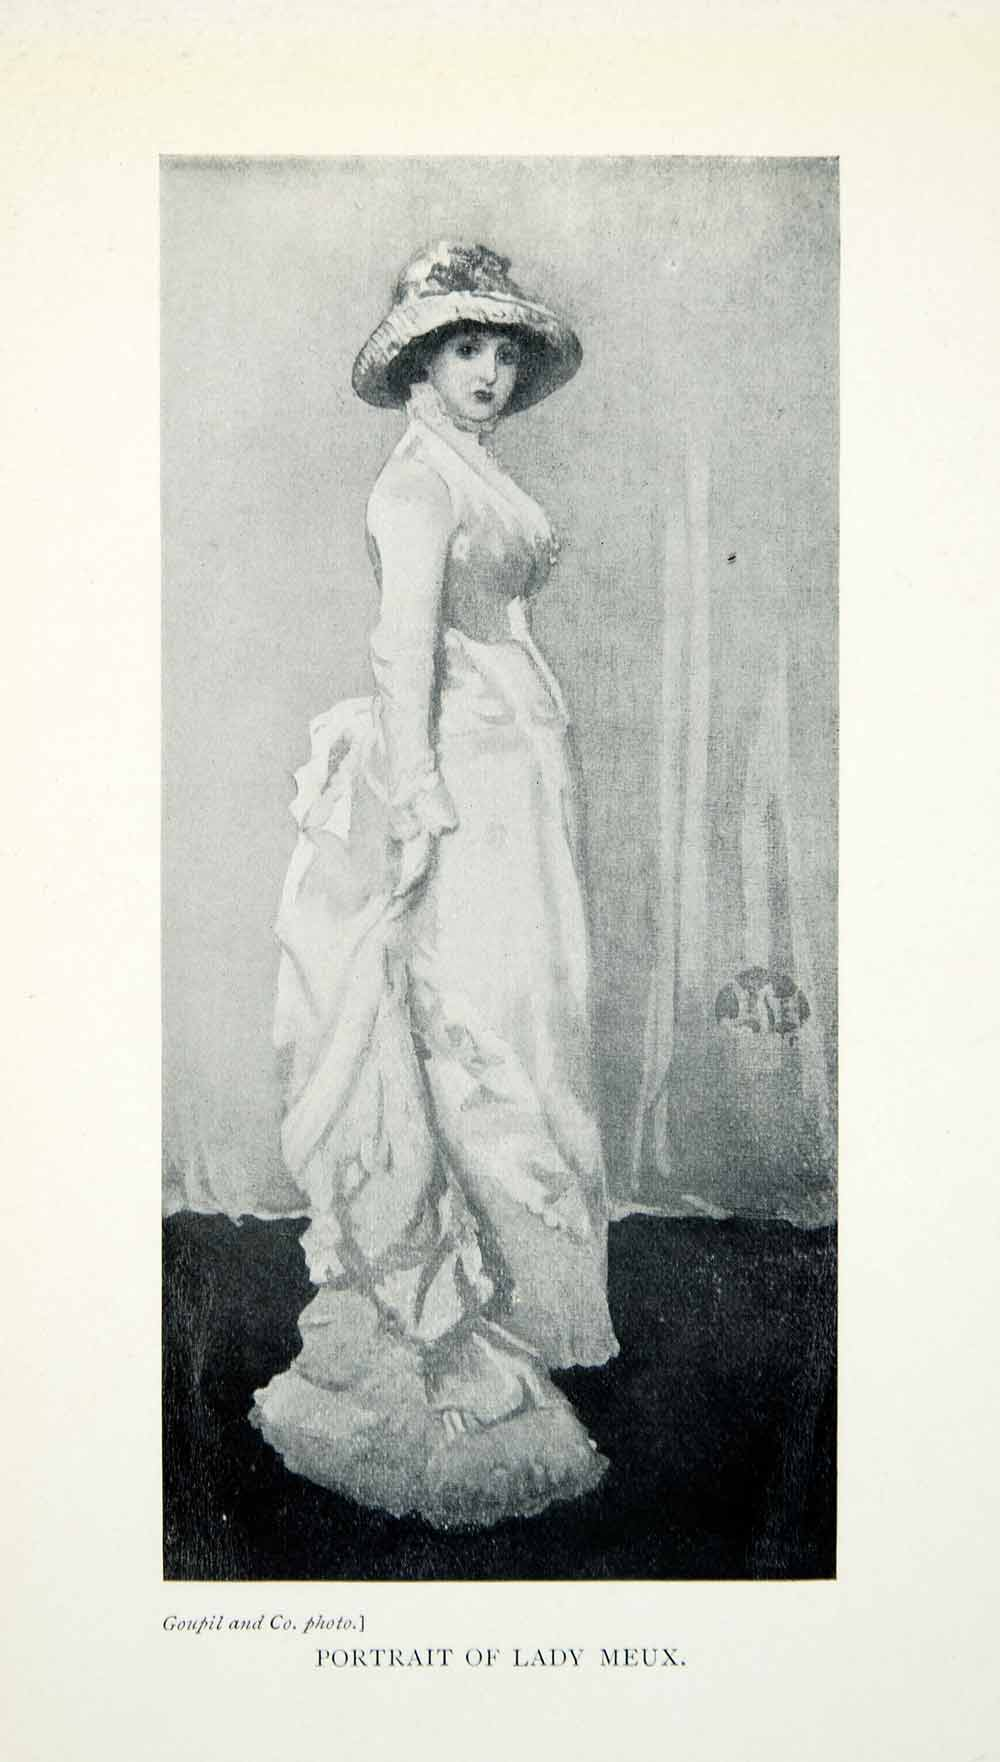 1904 Print James McNeill Whistler Portrait Lady Meux Dress Fashionable XALA5